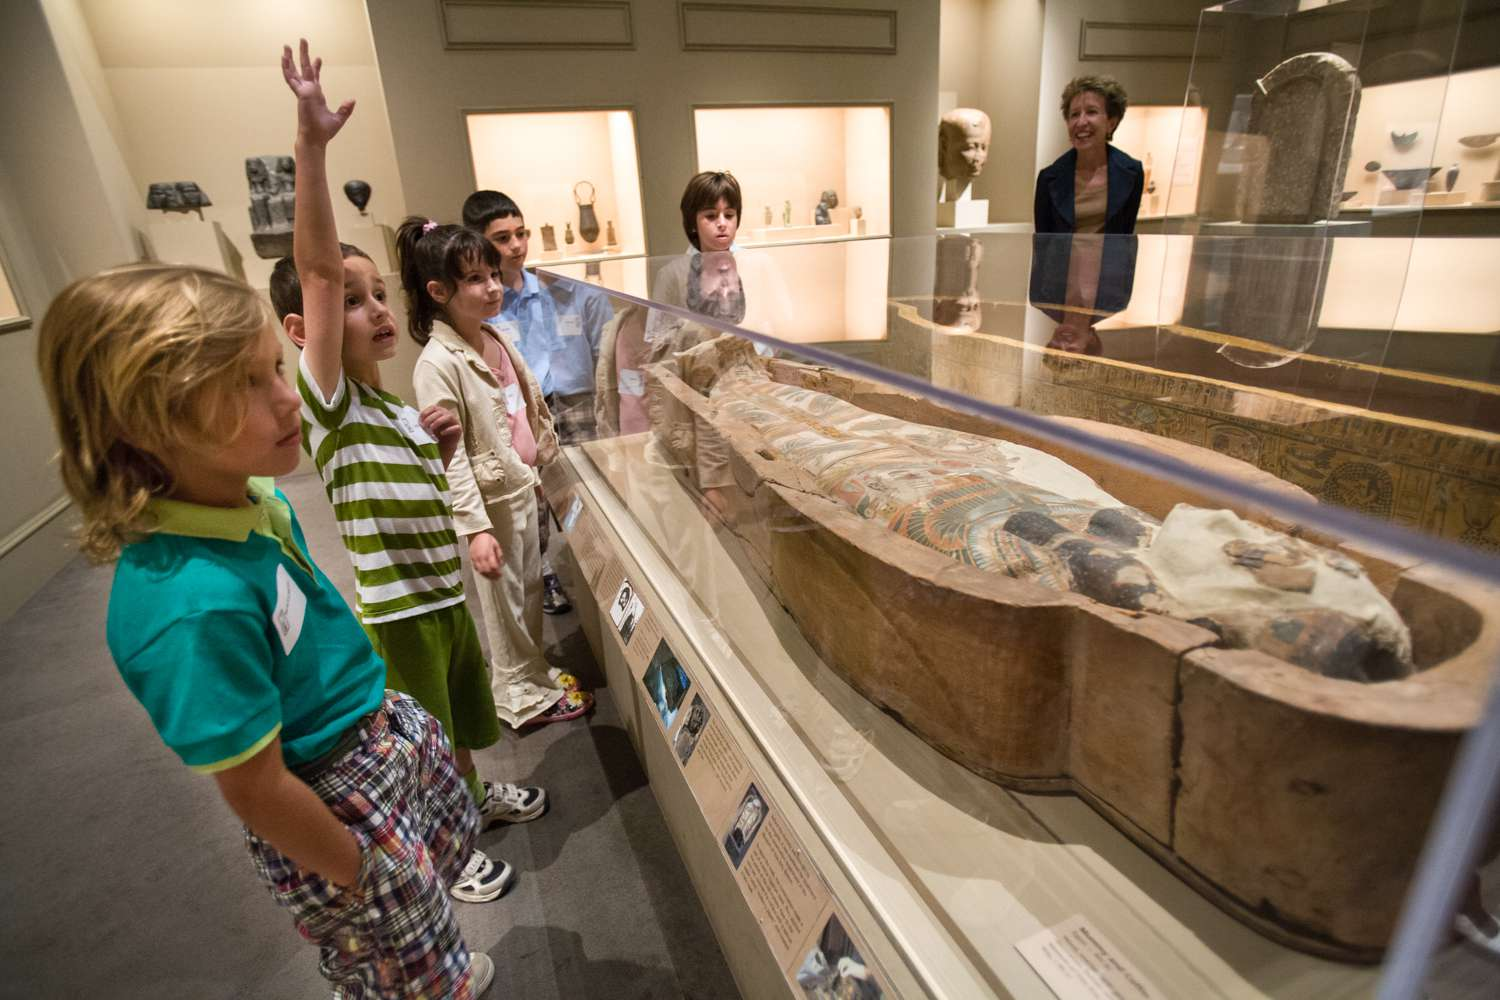 Kids on a tour of the Los Angeles County Museum of Art